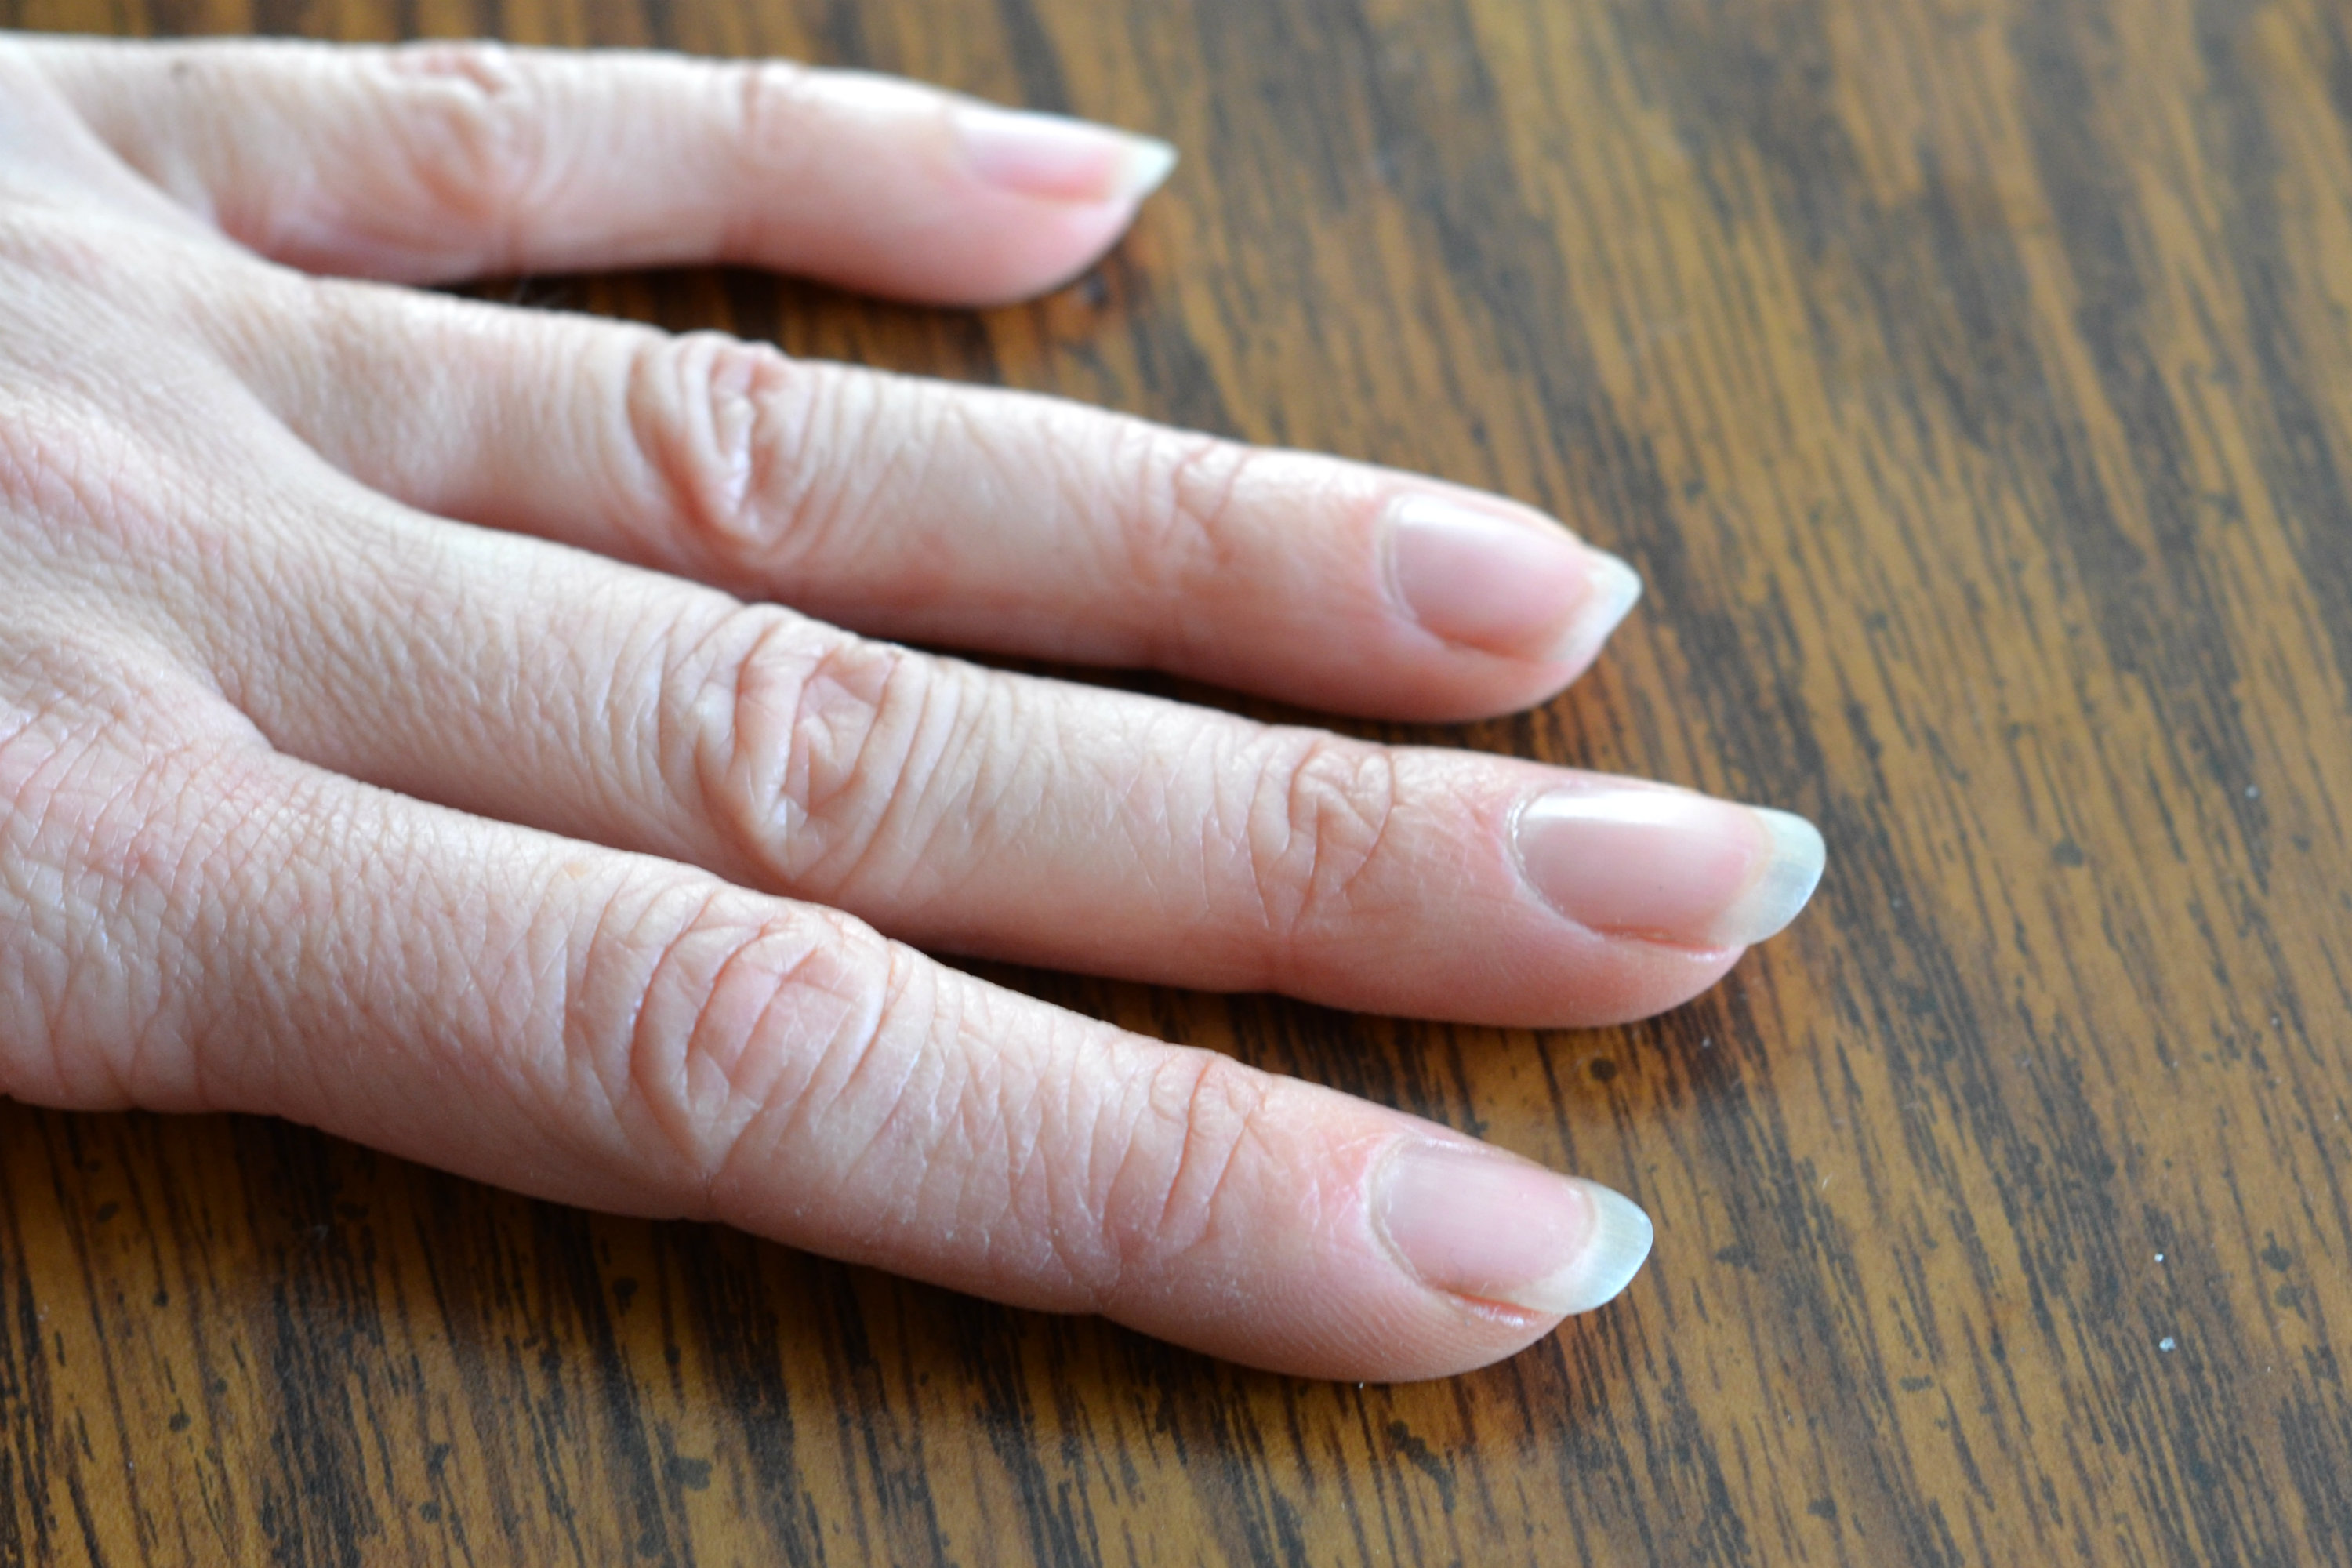 How to Heal a Damaged Cuticle | LIVESTRONG.COM